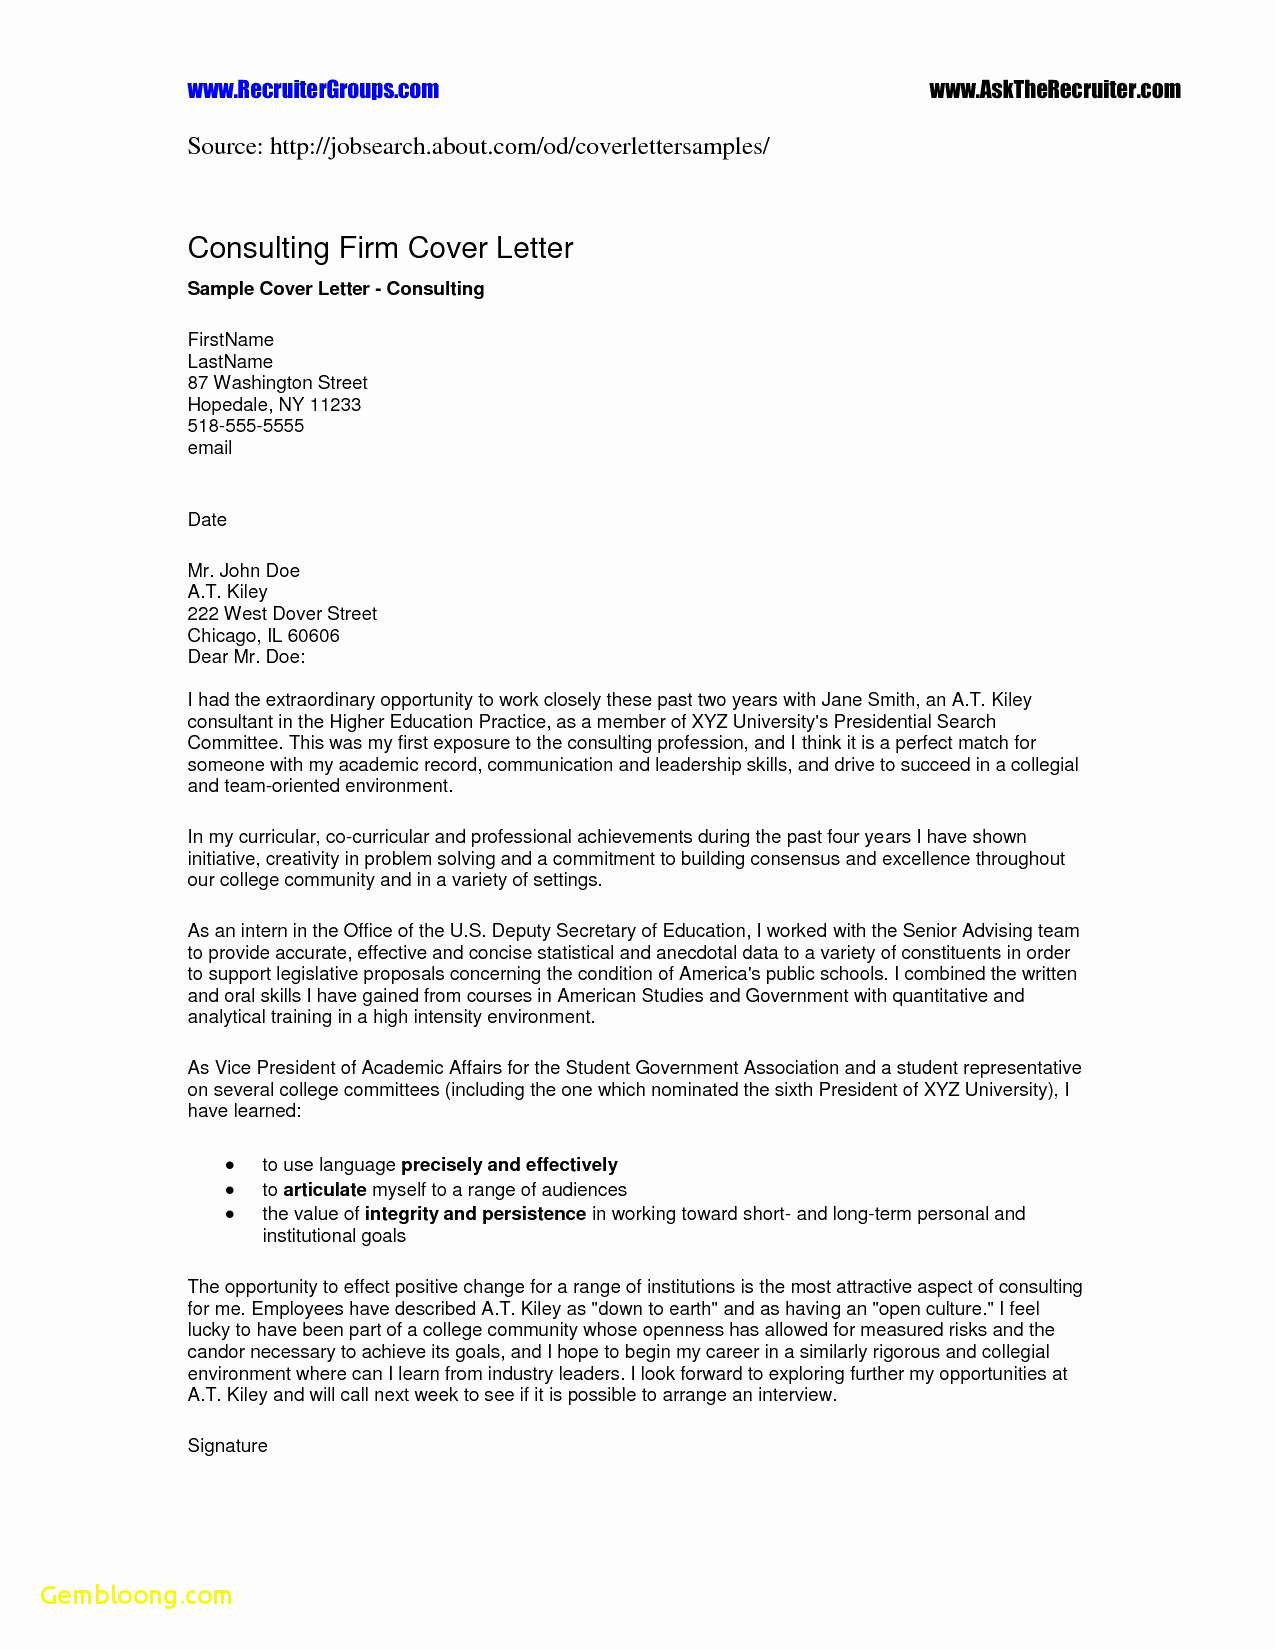 Cfo Cover Letter Template - Cfo Resume Templates Elegant Resume and Cover Letter Template